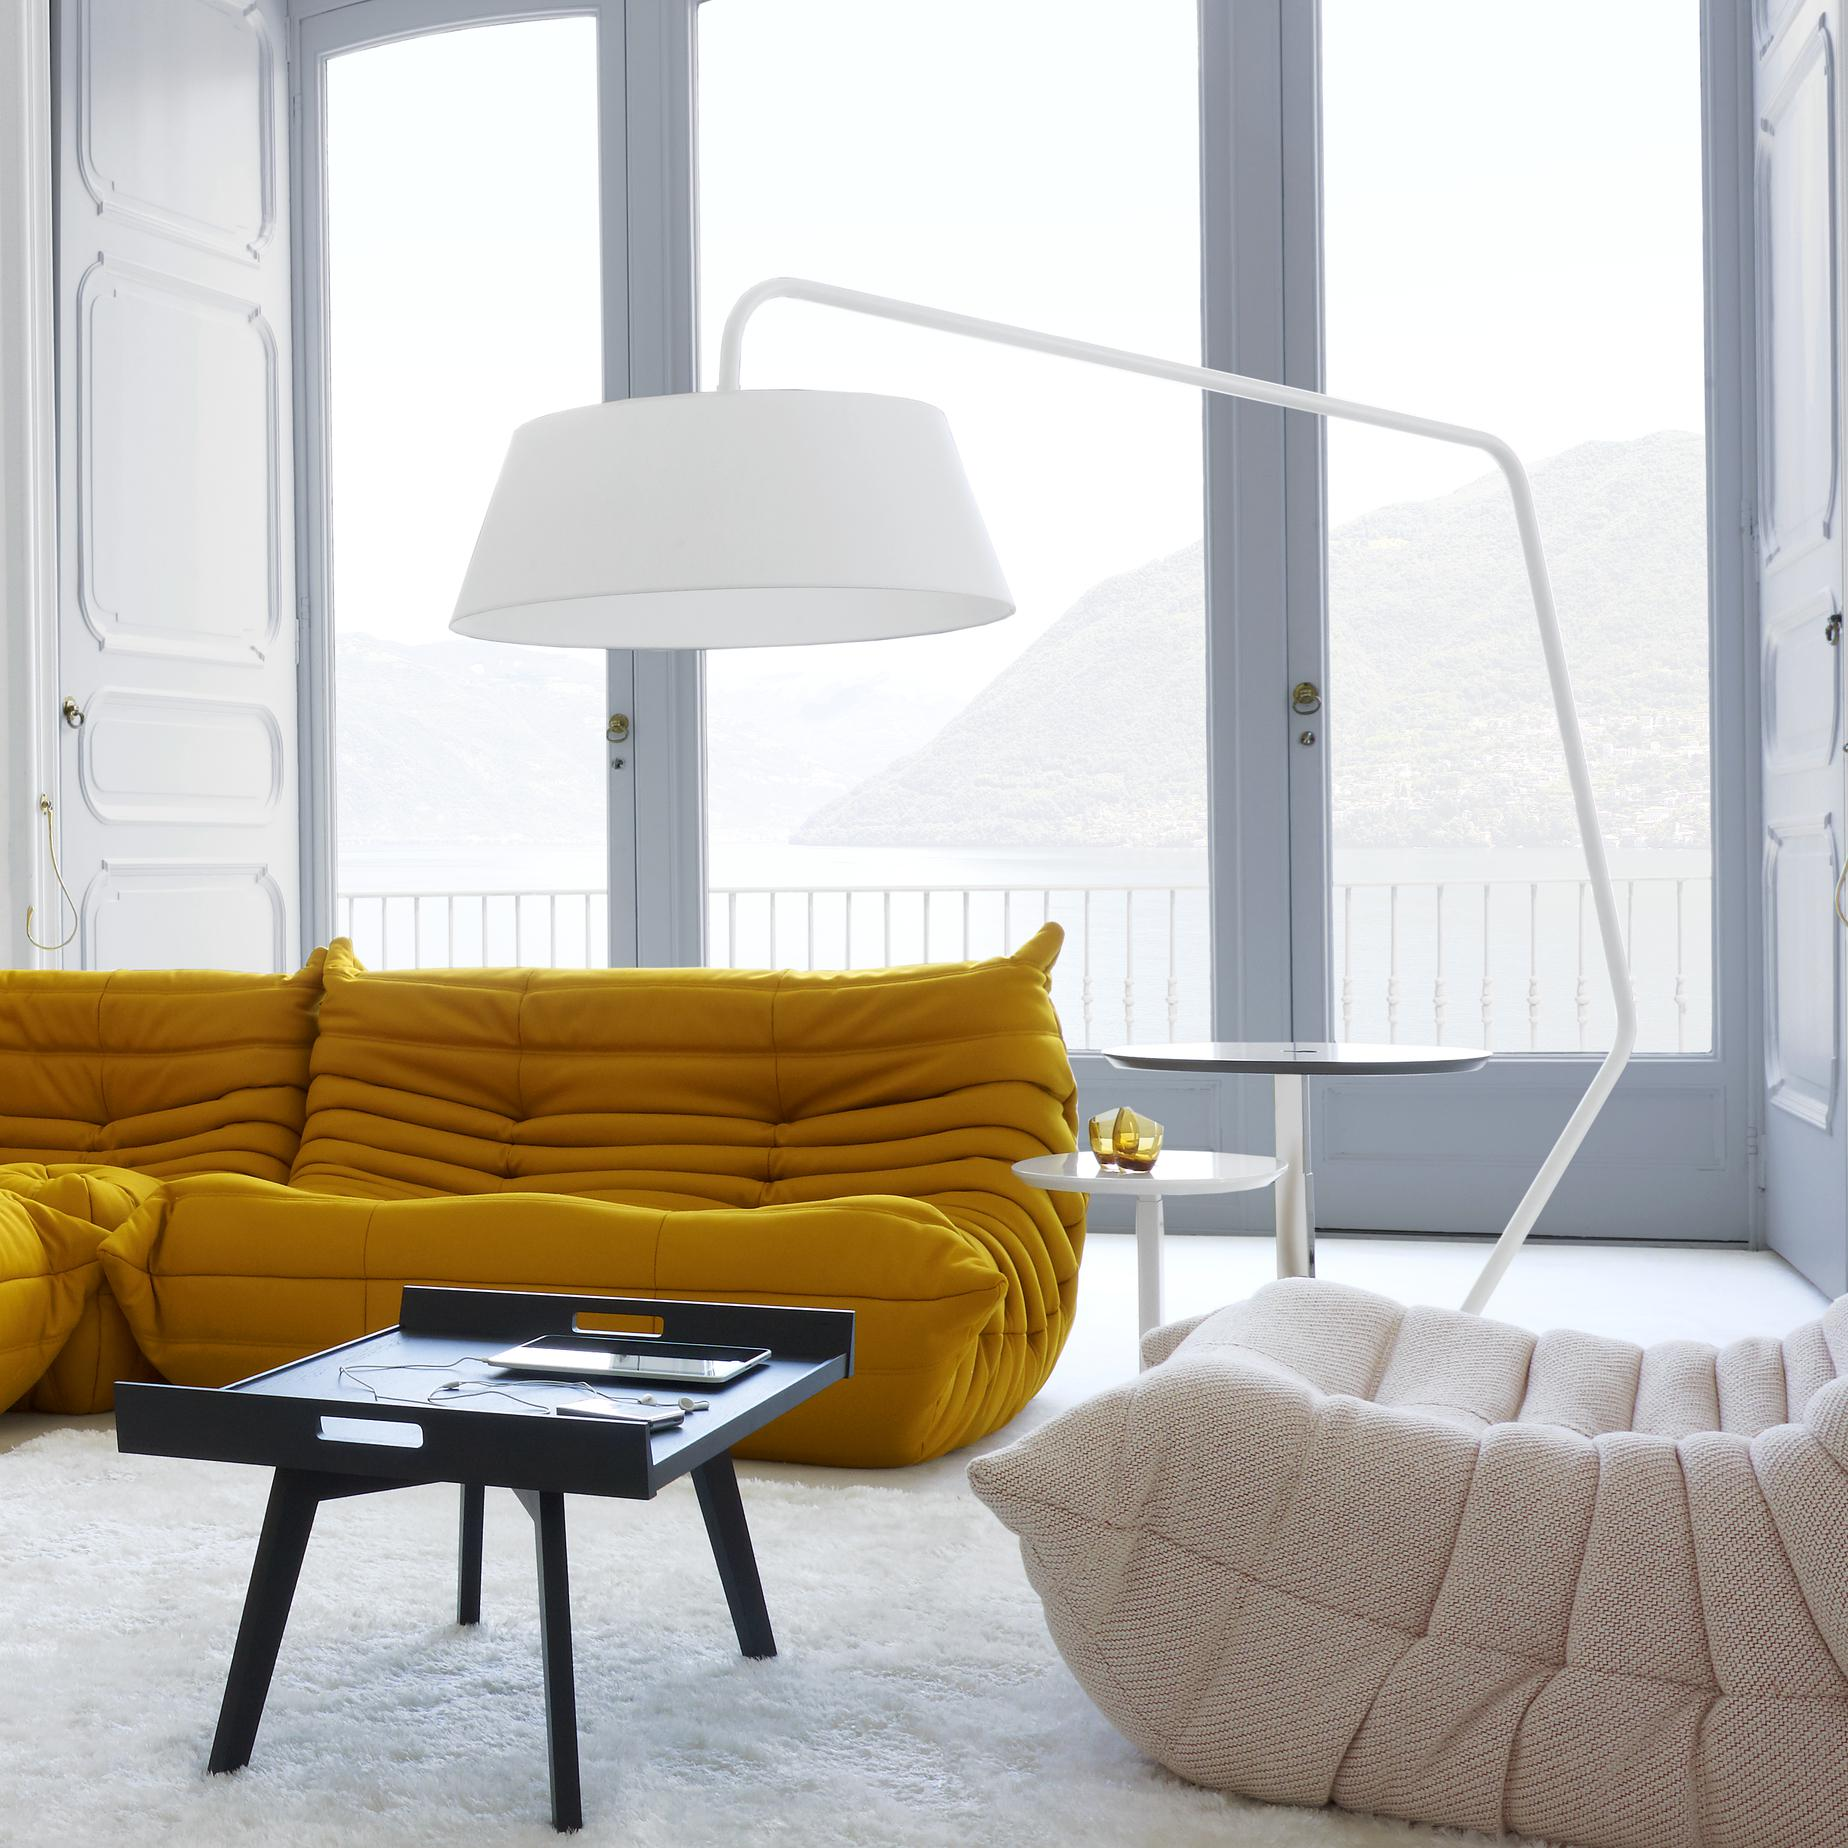 bul floor lighting from designer ligne roset ligne roset official site. Black Bedroom Furniture Sets. Home Design Ideas